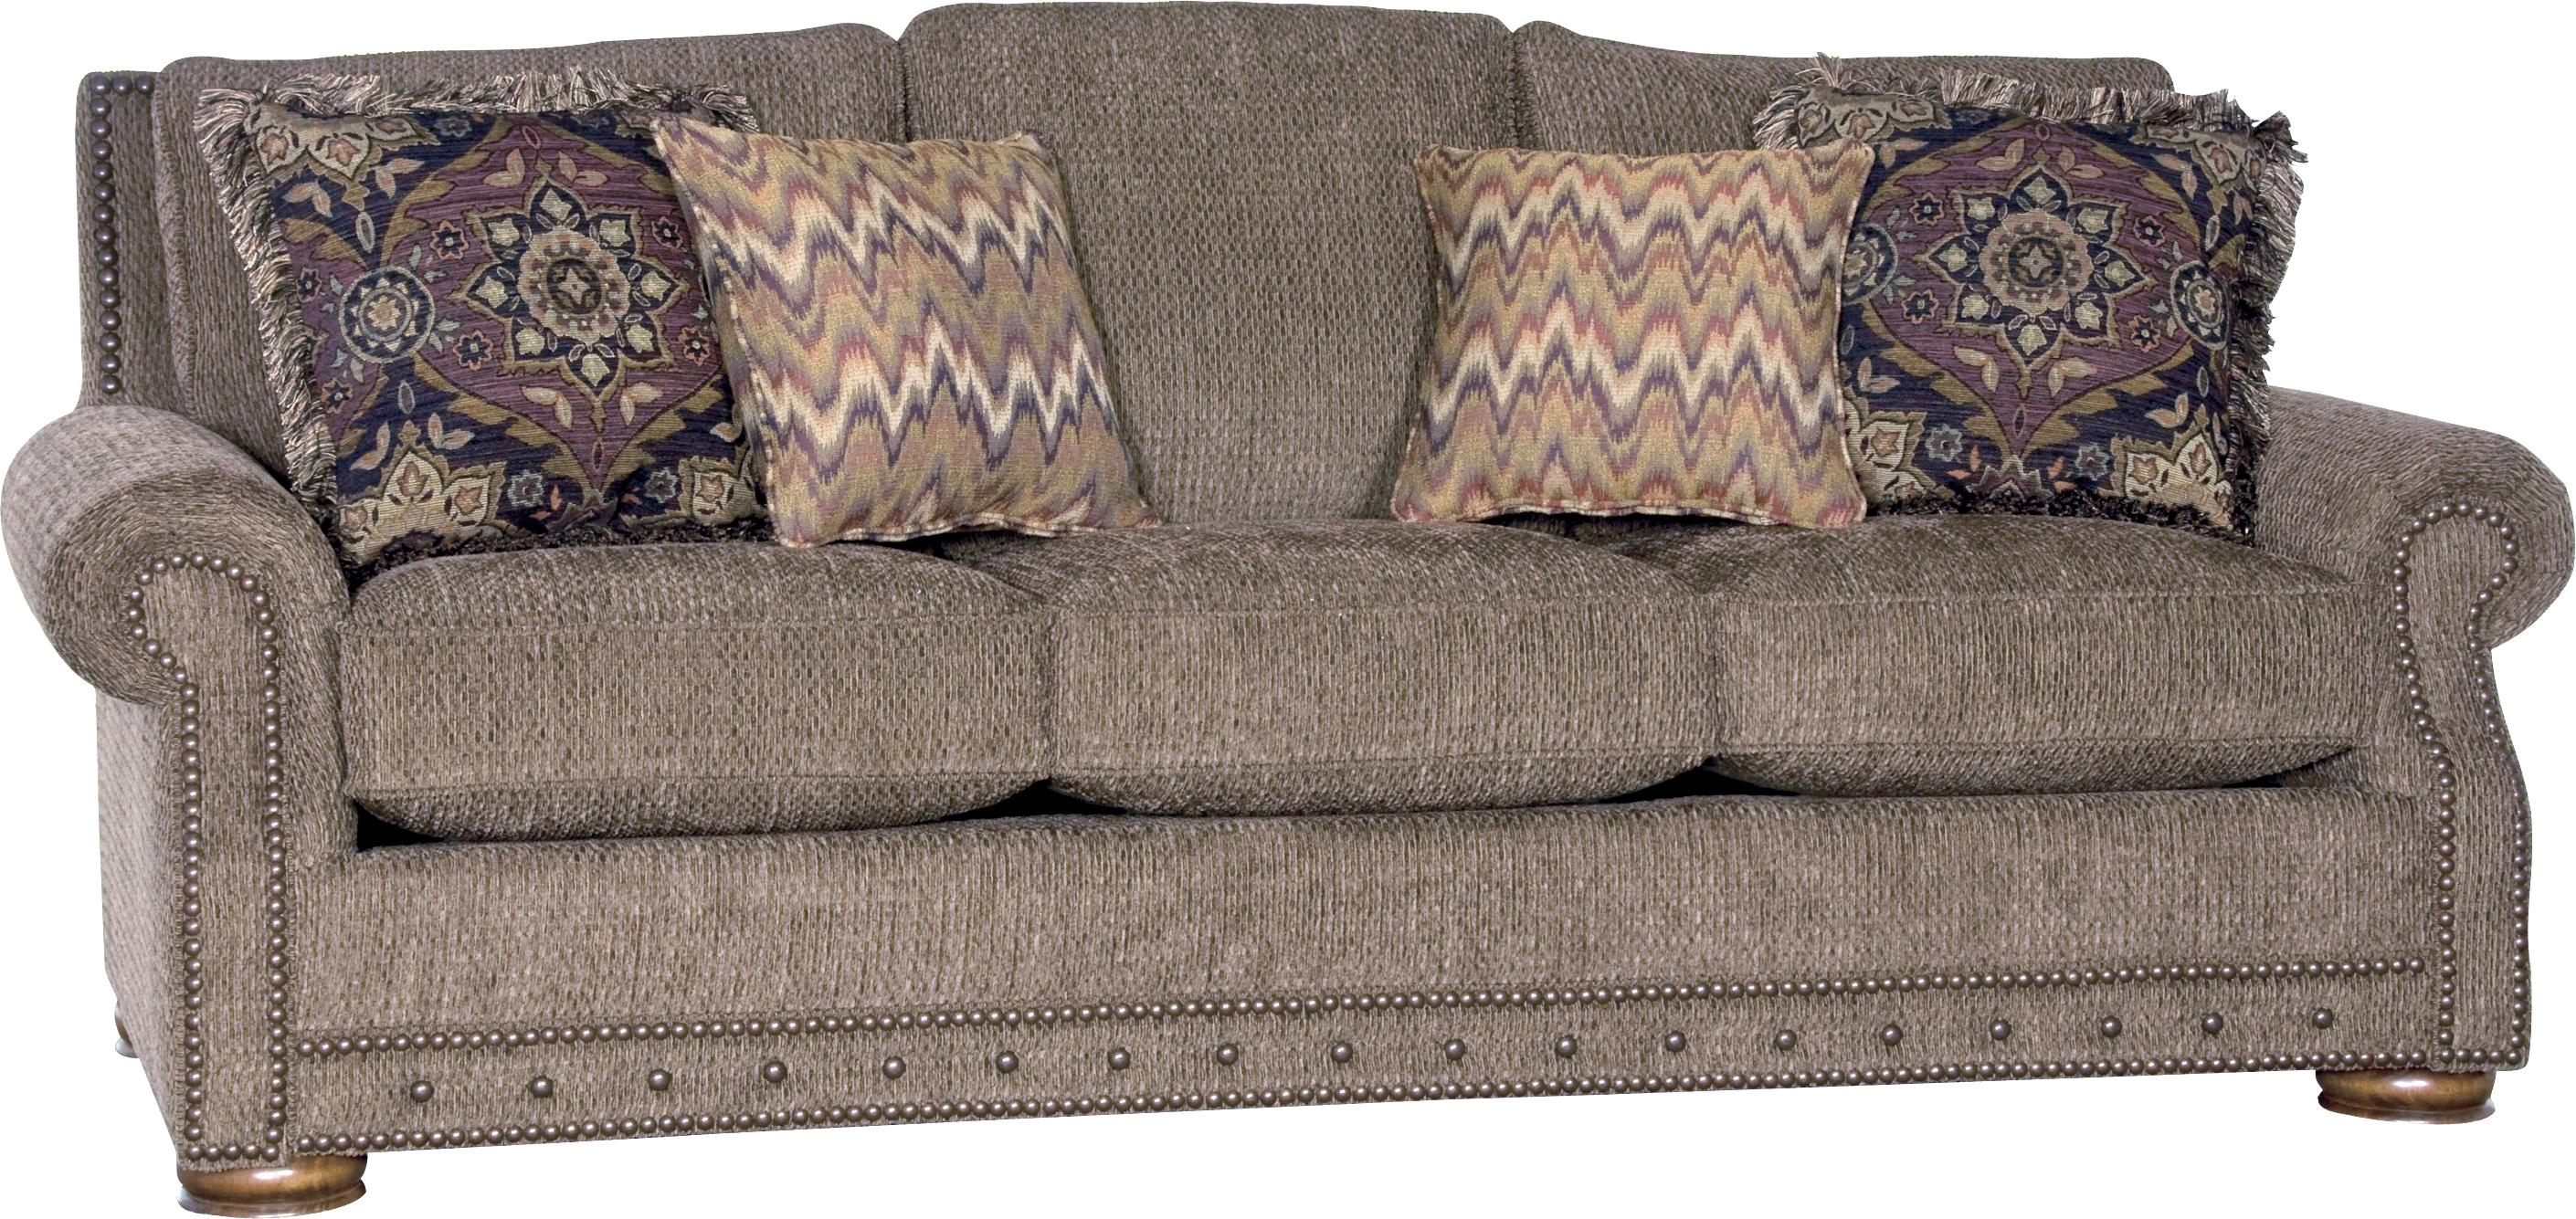 2900 Traditional Sofa by Mayo at Miller Waldrop Furniture and Decor